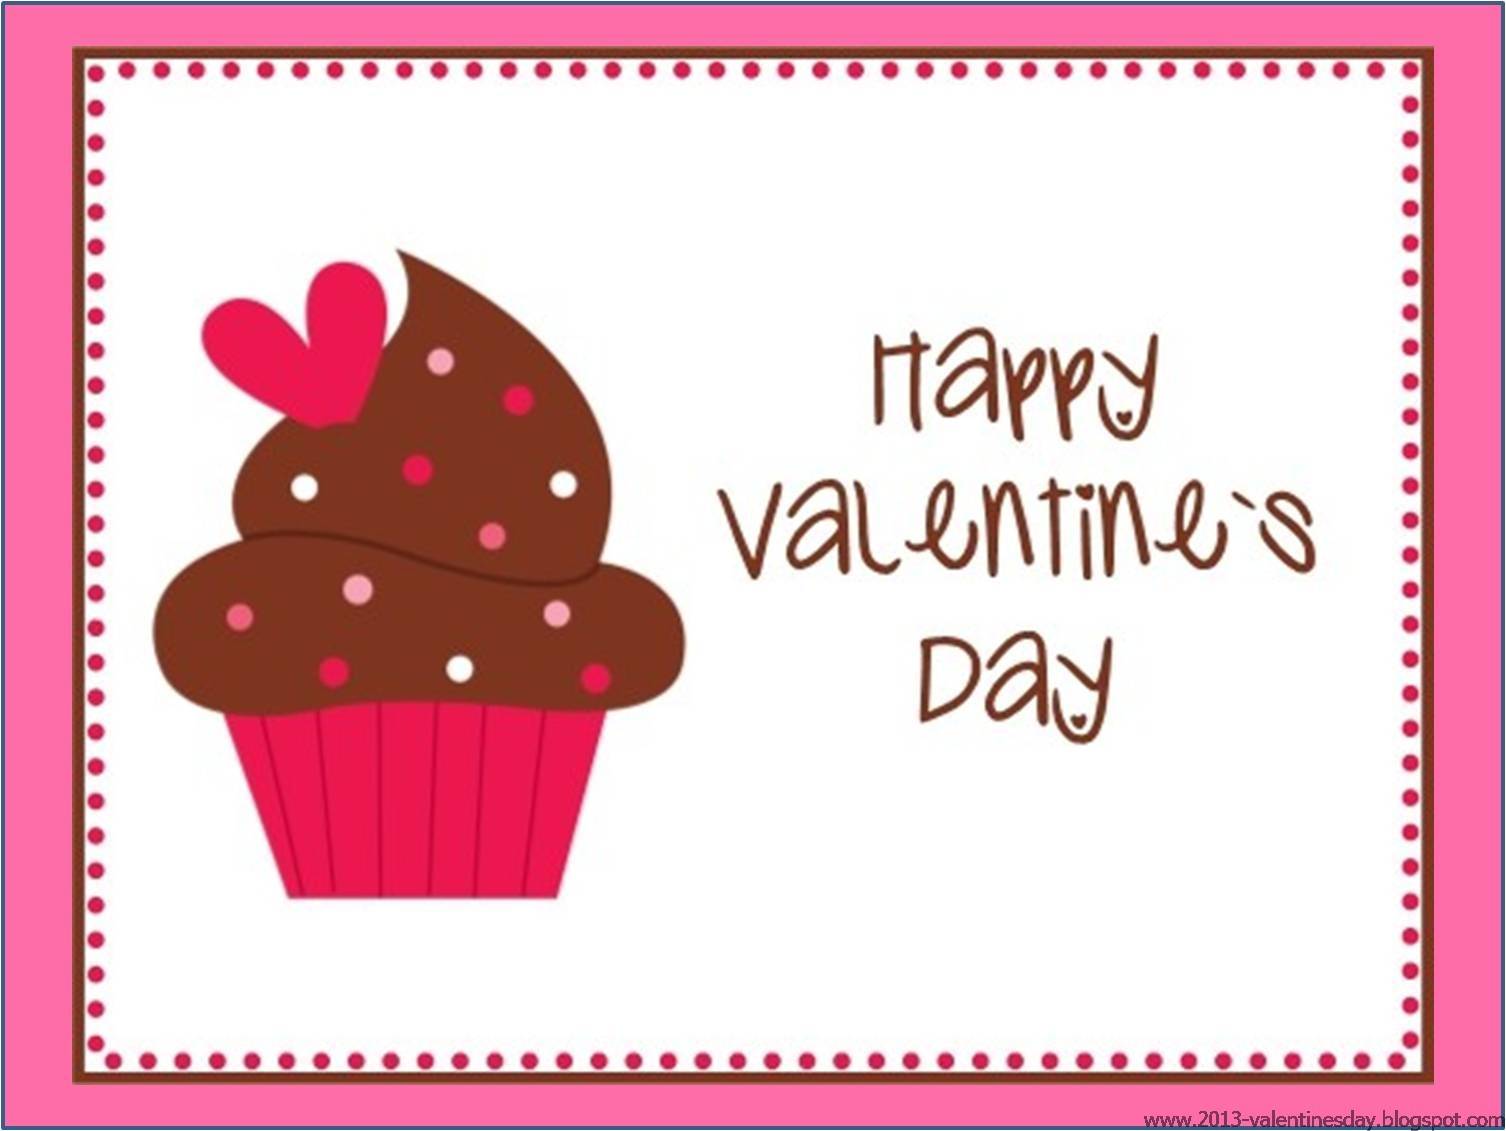 Valentines day Clip Art Collection 2014 | Valentine's Day